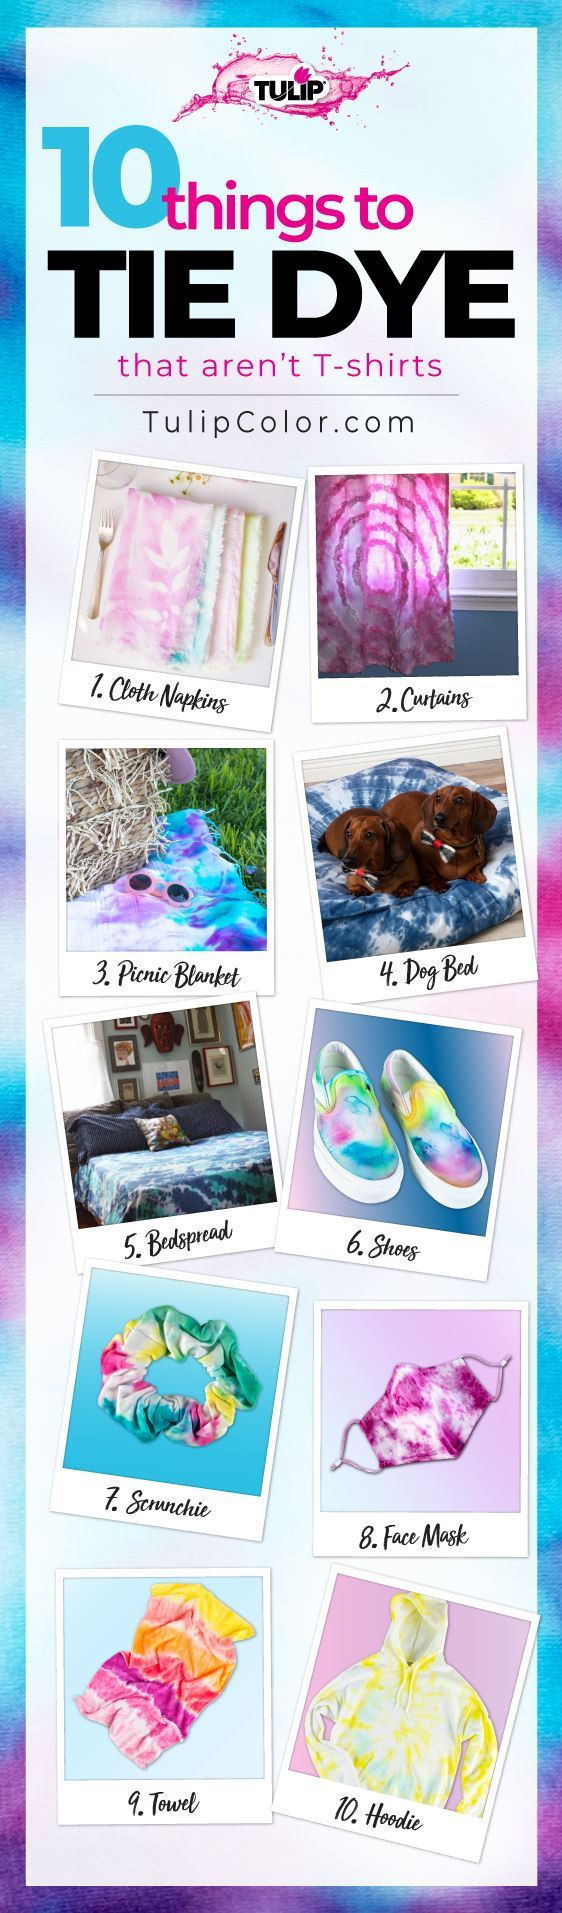 10 Things To Tie Dye That Aren't T-shirts